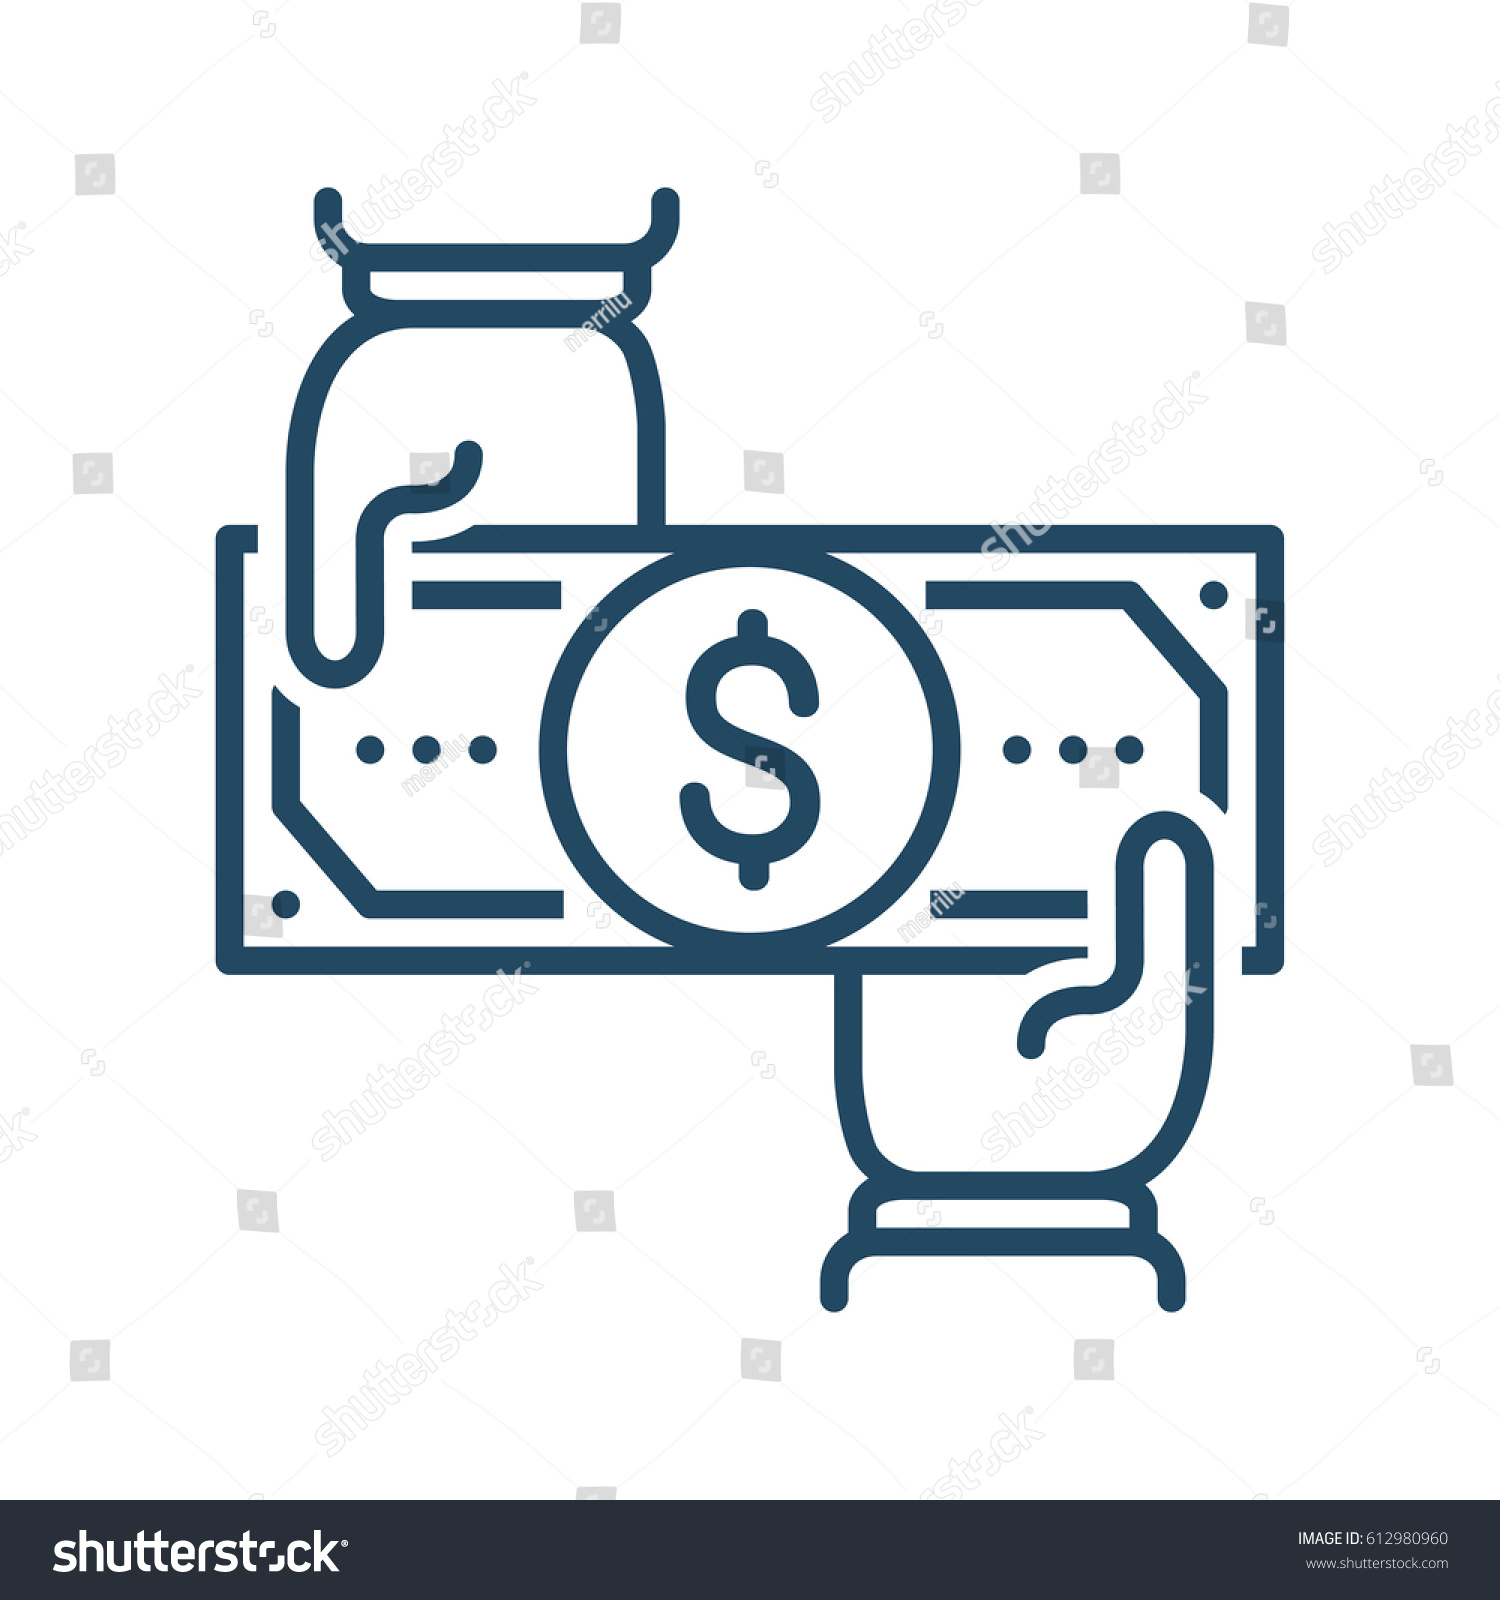 Two human hands holding dollar bill stock vector 612980960 two human hands holding dollar bill vector icon meaning transfer money buycottarizona Choice Image